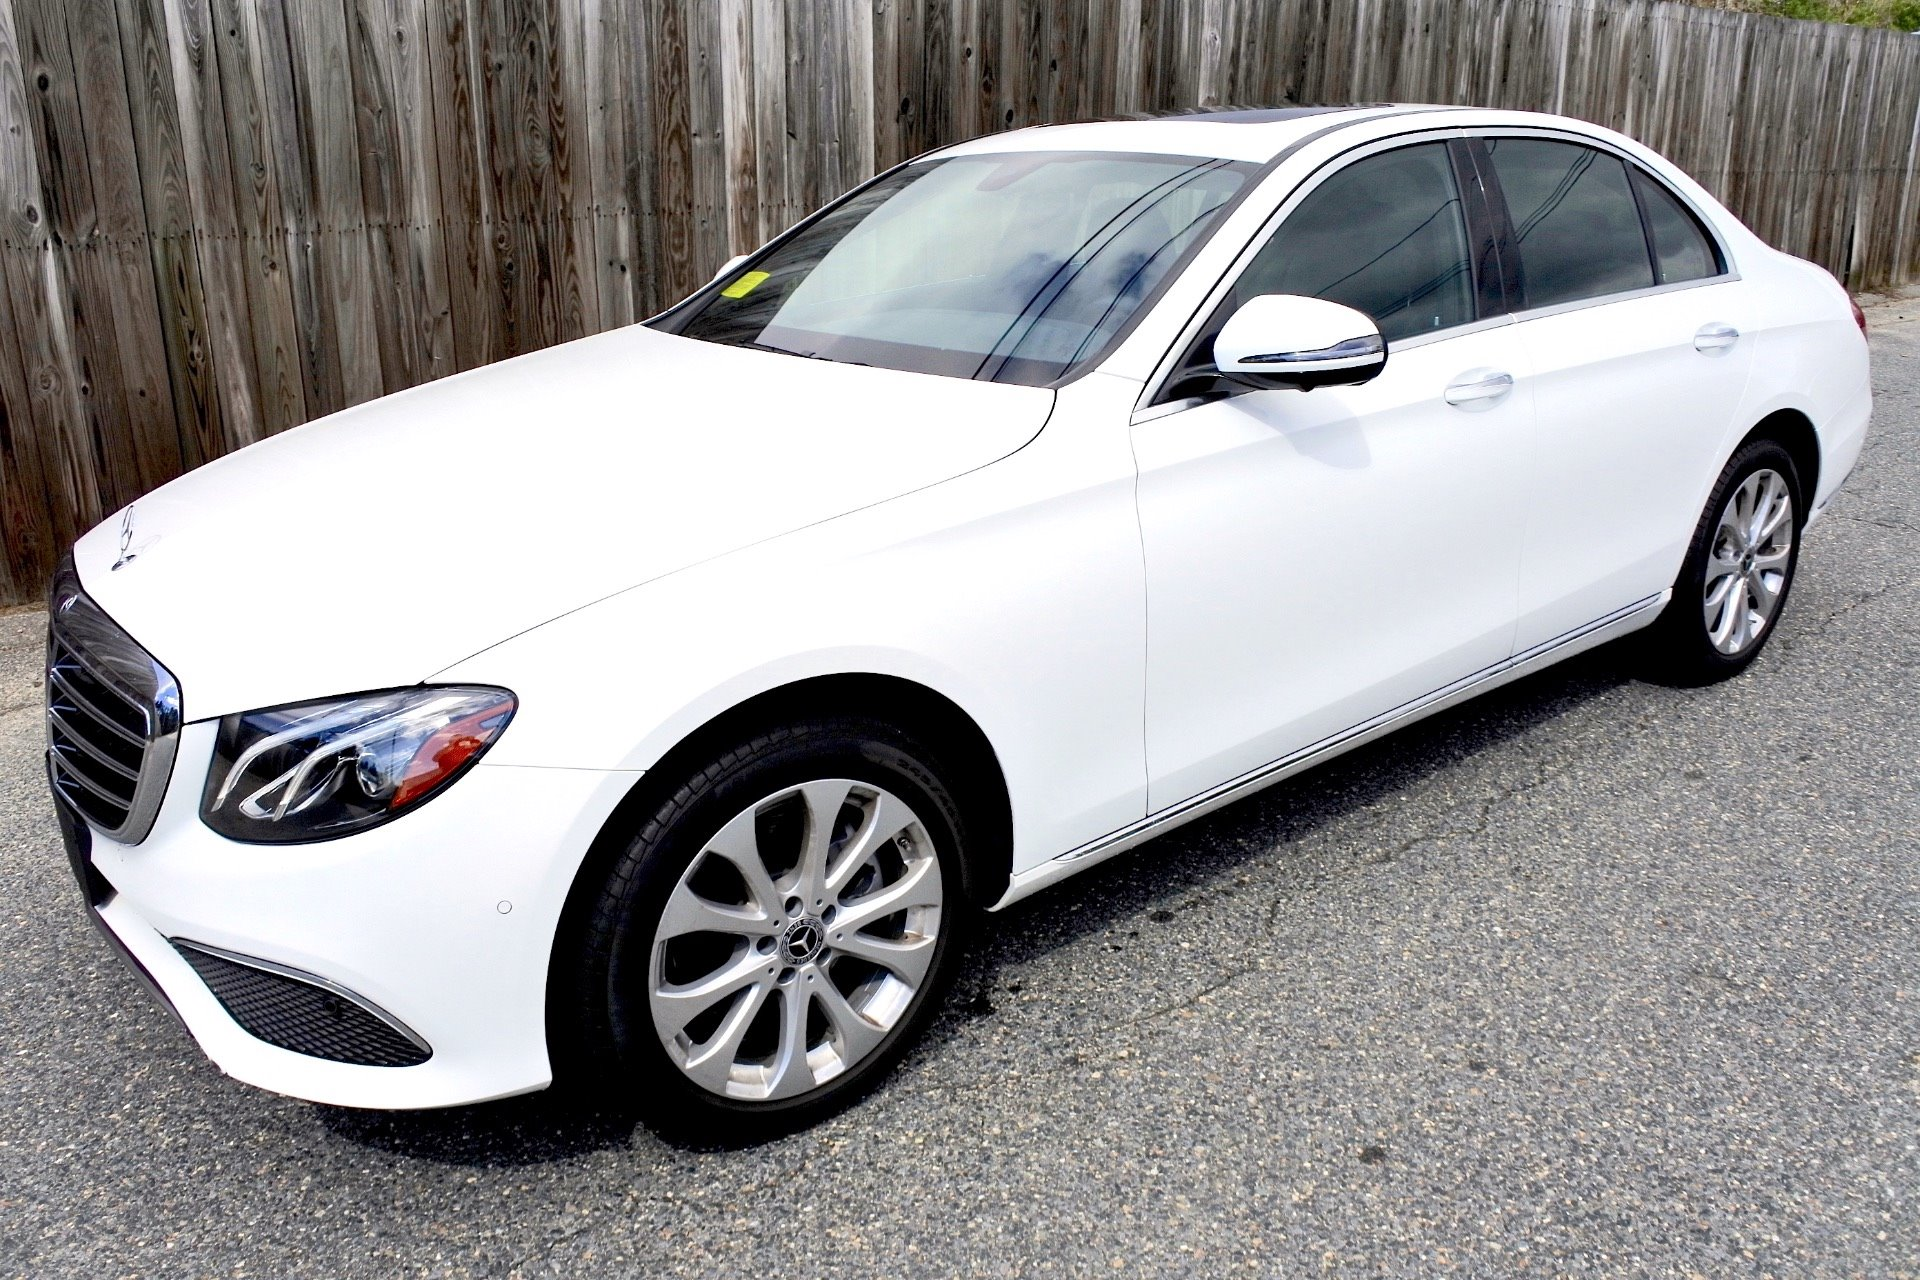 New 2019 Mercedes-Benz E 300 4MATIC E 300 4MATIC for sale $56,000 at M and V Leasing in Brooklyn NY 11223 1